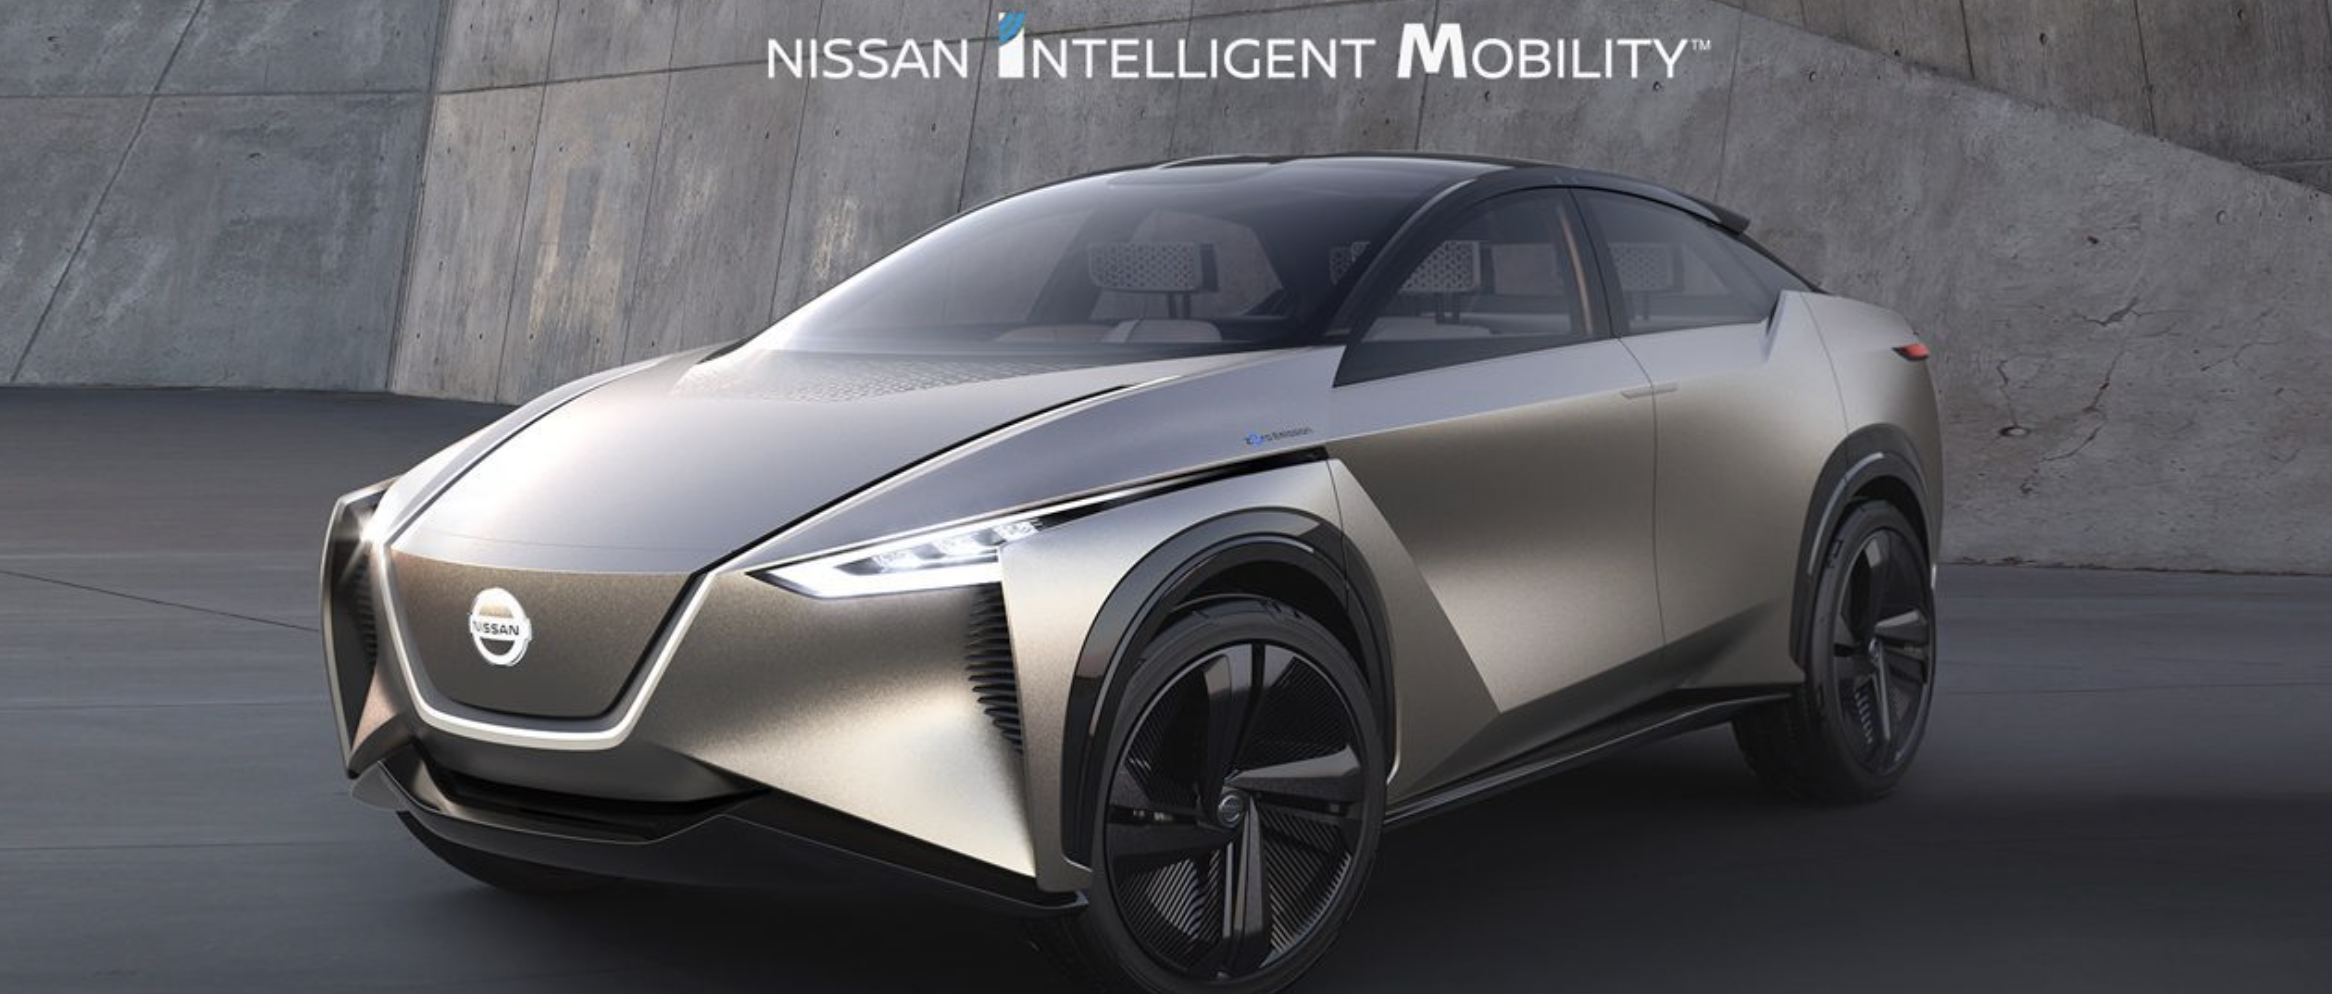 Nissan Intelligent Mobility™